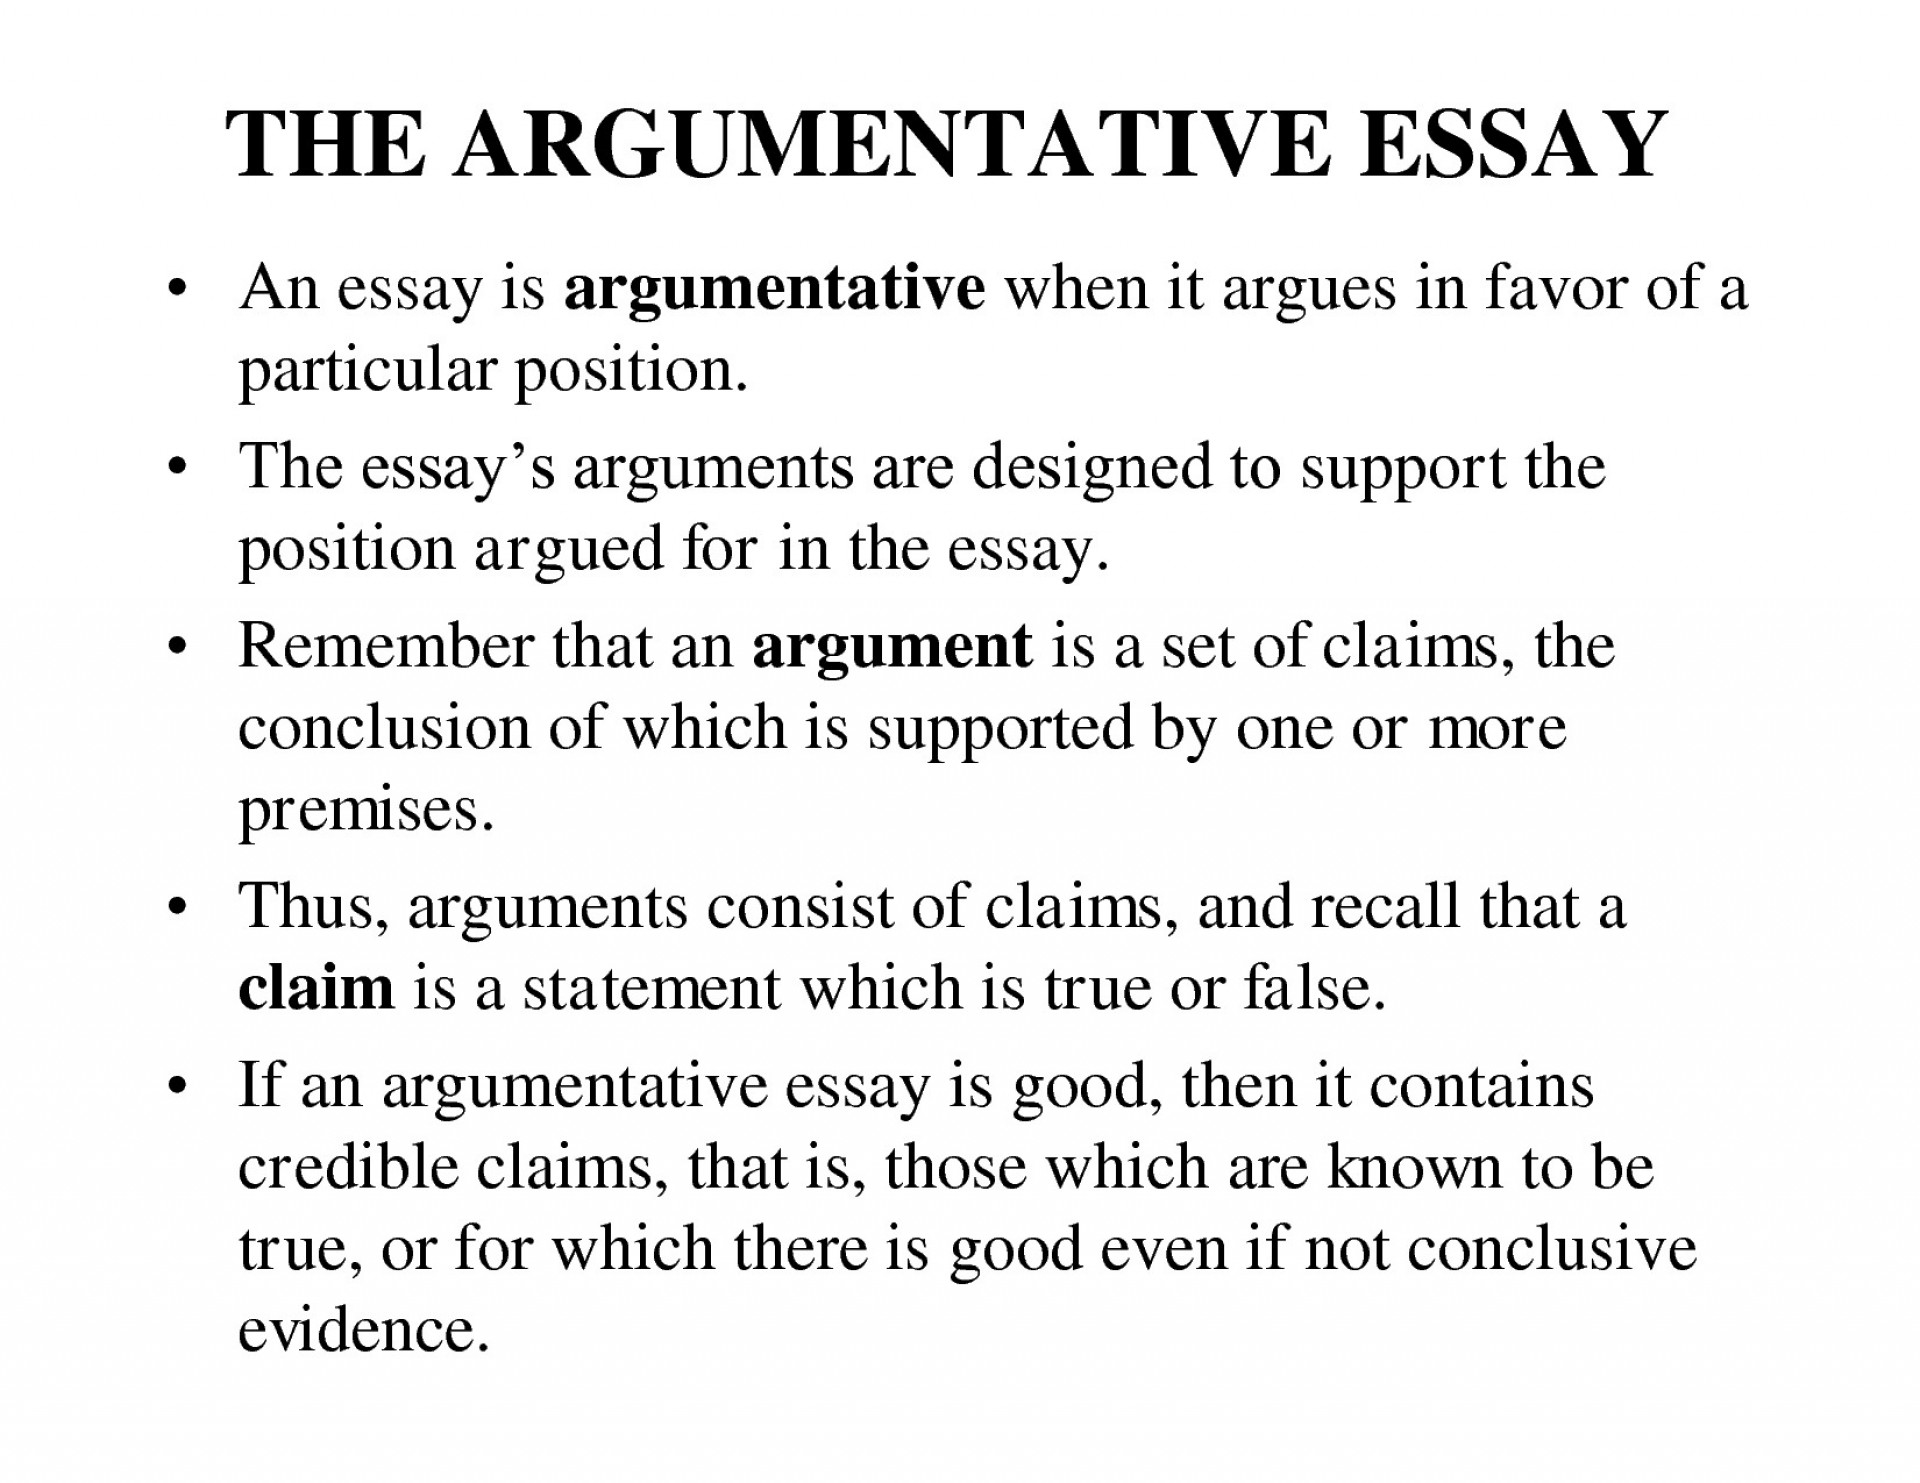 002 Example Of Argumentative Essay Conclusion Ways To Write For Beautiful Introduction Body And 1920